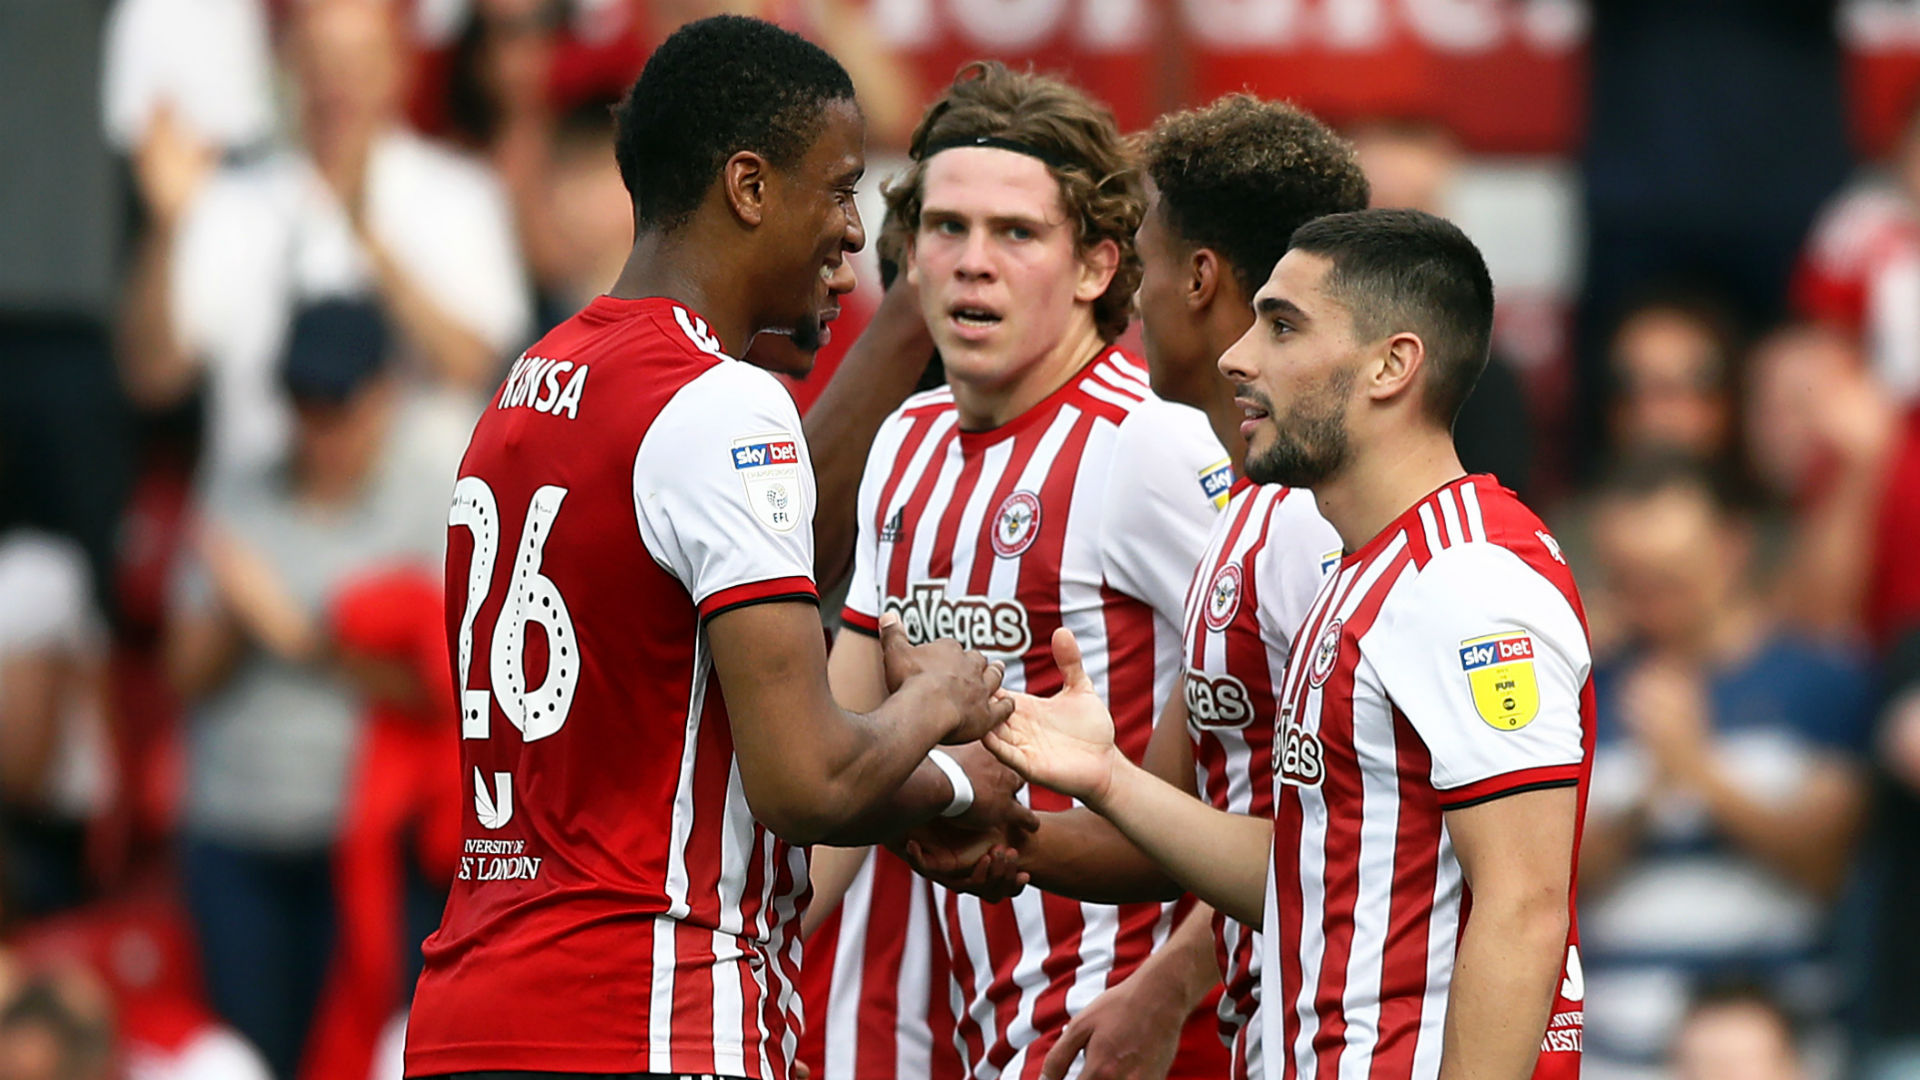 Brentford 2 Leeds United 0: Automatic promotion hopes hanging by a thread for Bielsa